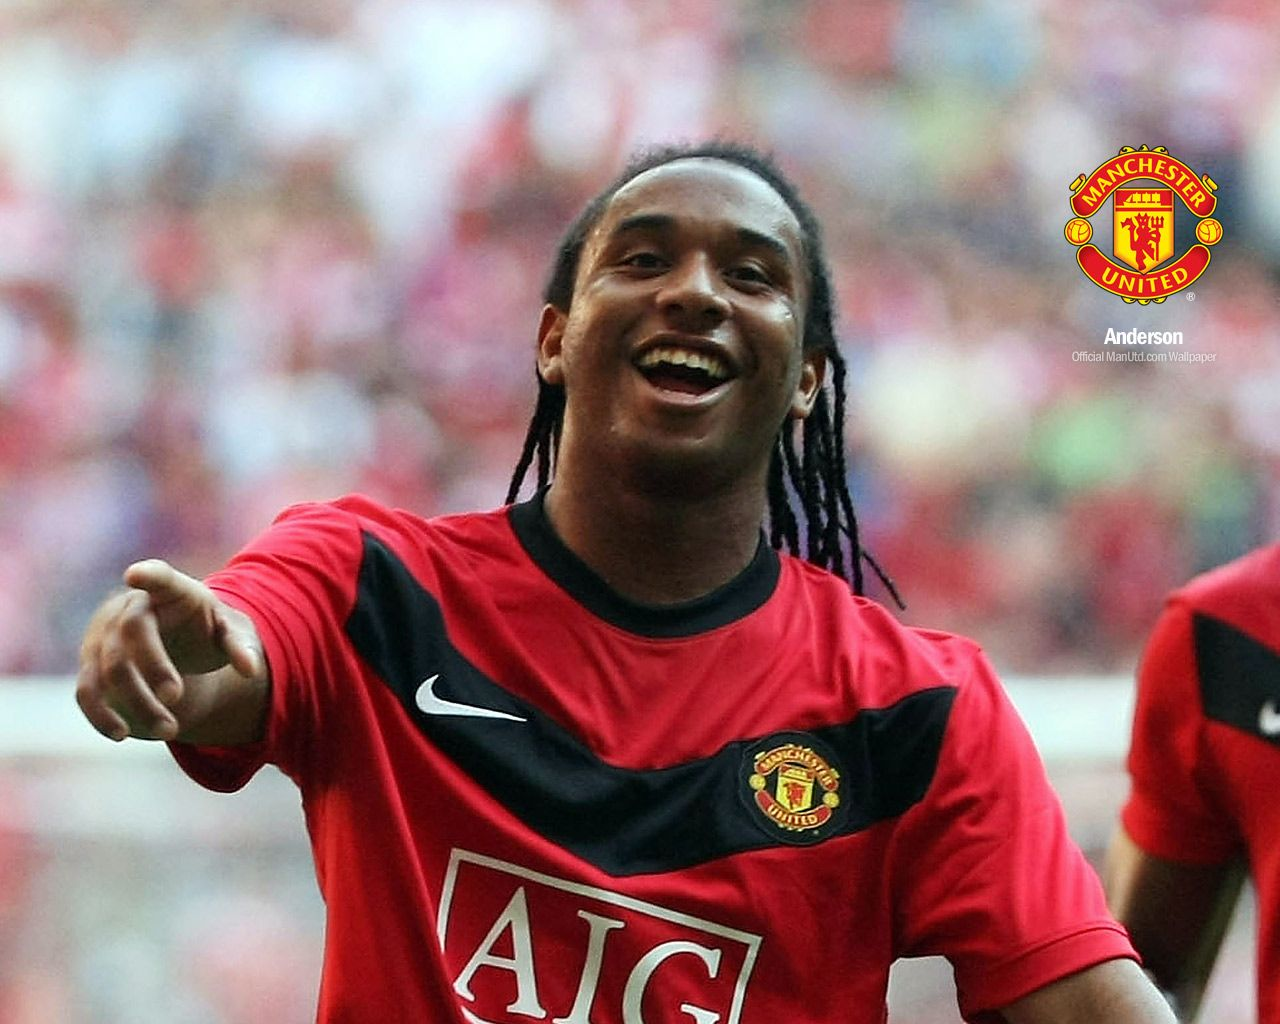 The Best Footballers: Anderson is international football ...